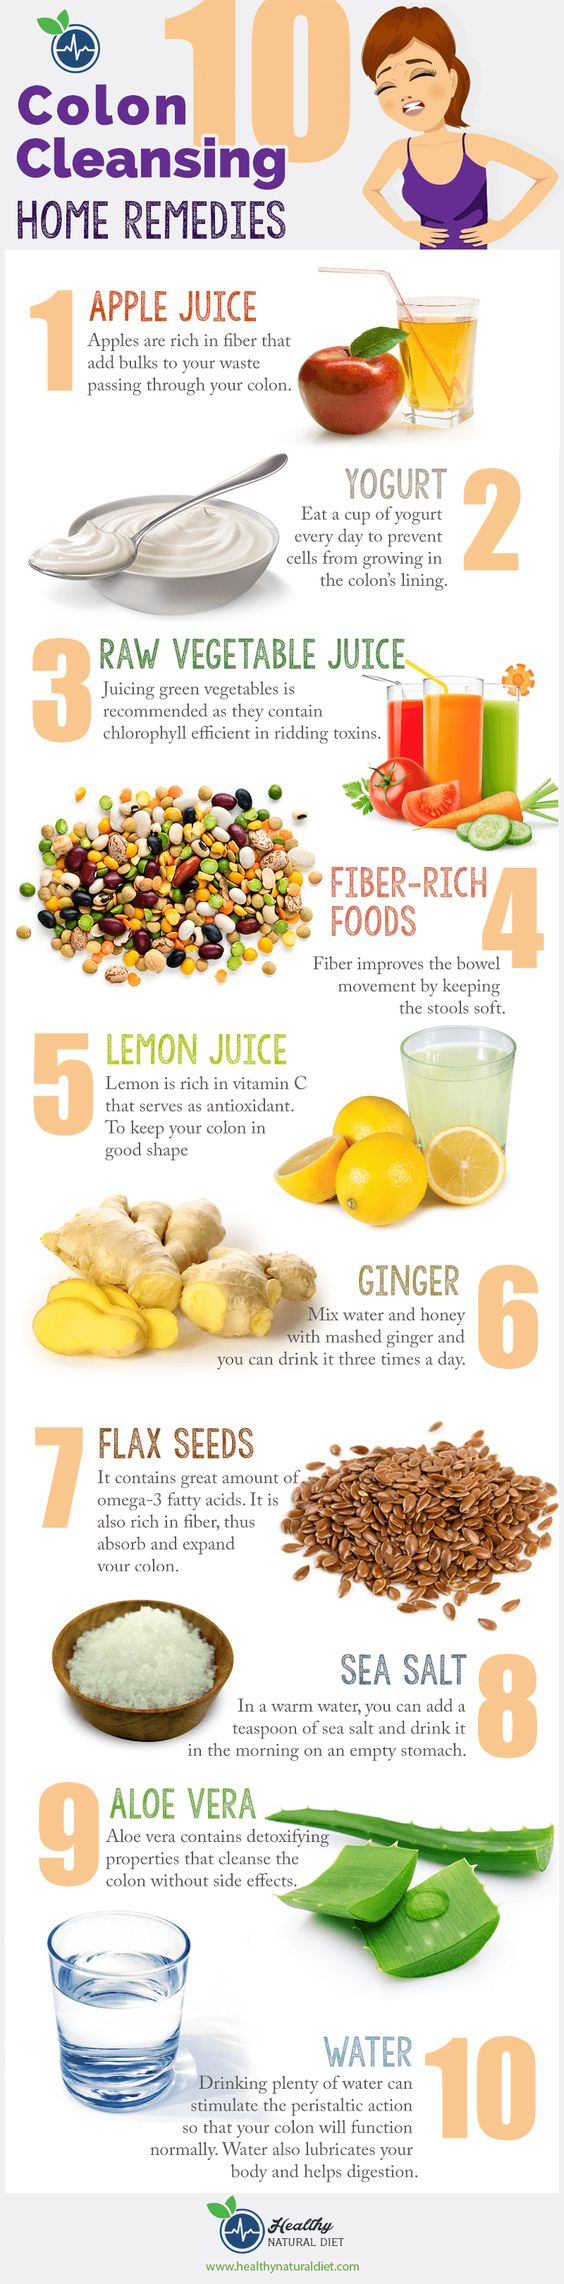 colon cleanse home remedies infographic